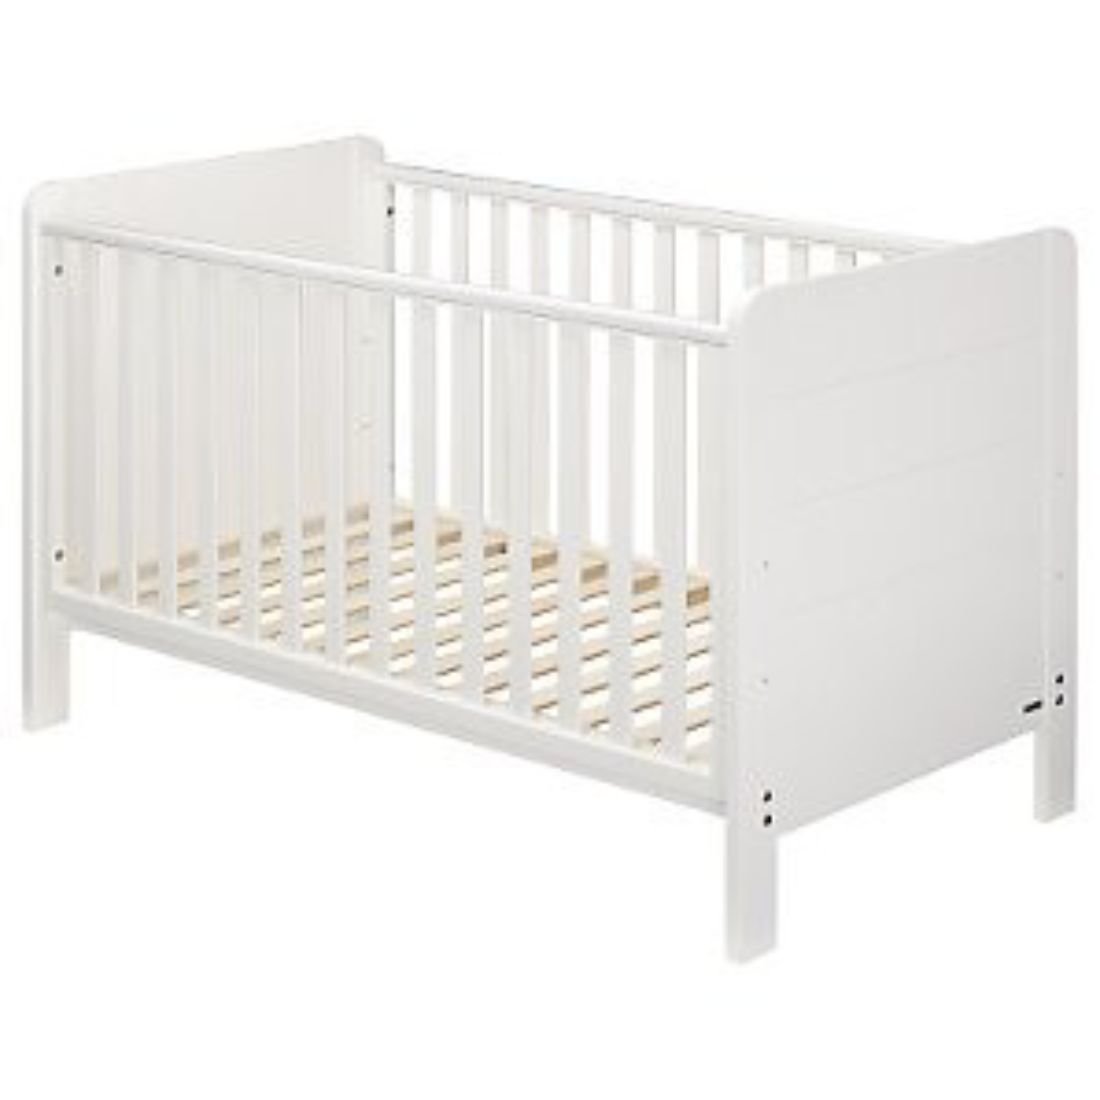 Mattress To Fit John Lewis Malmo Cot Bed Stage 1